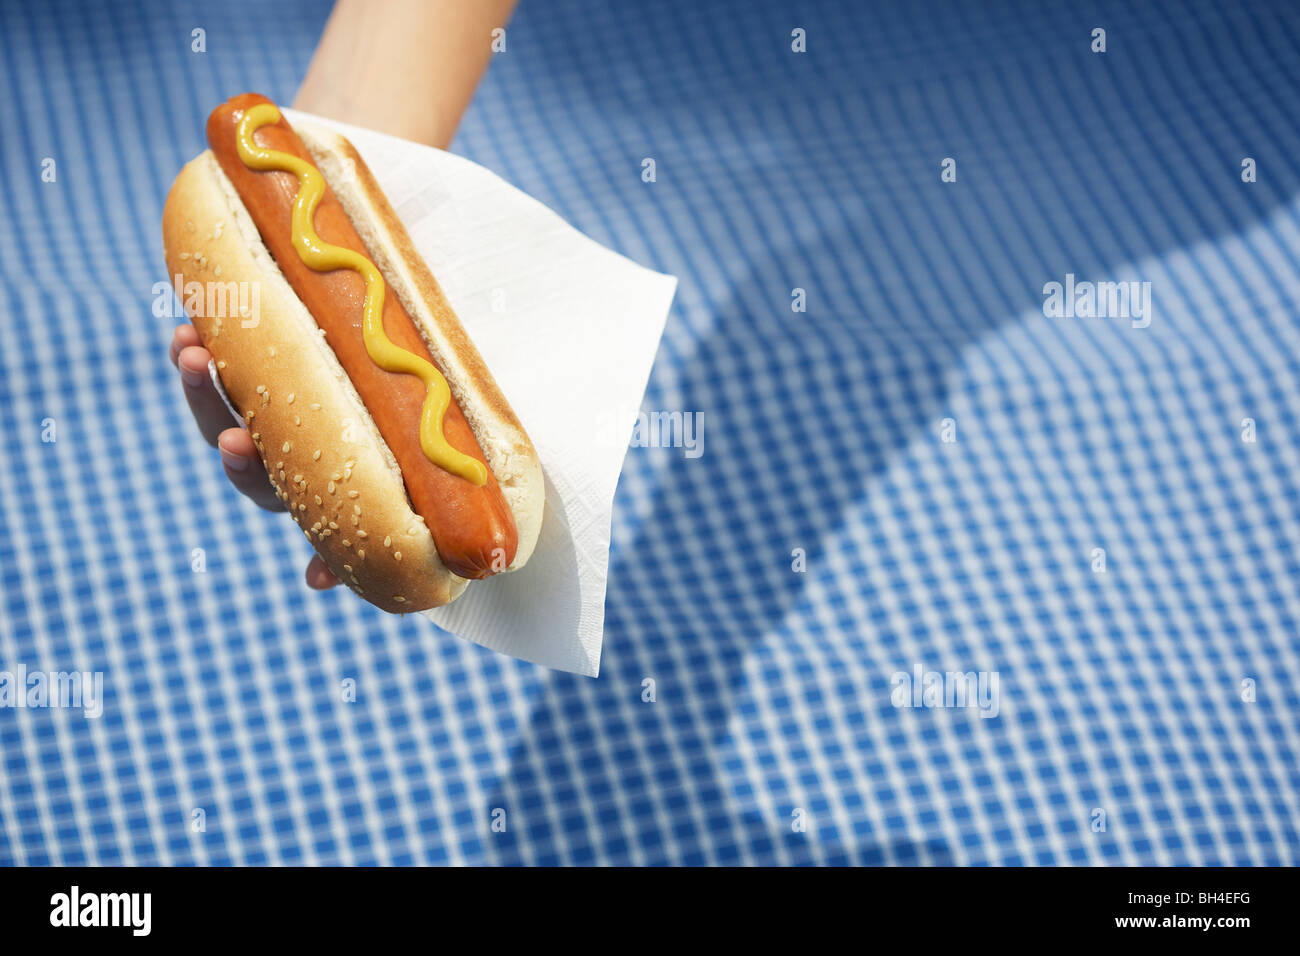 Hand holding a hotdog over a picnic blanket - Stock Image